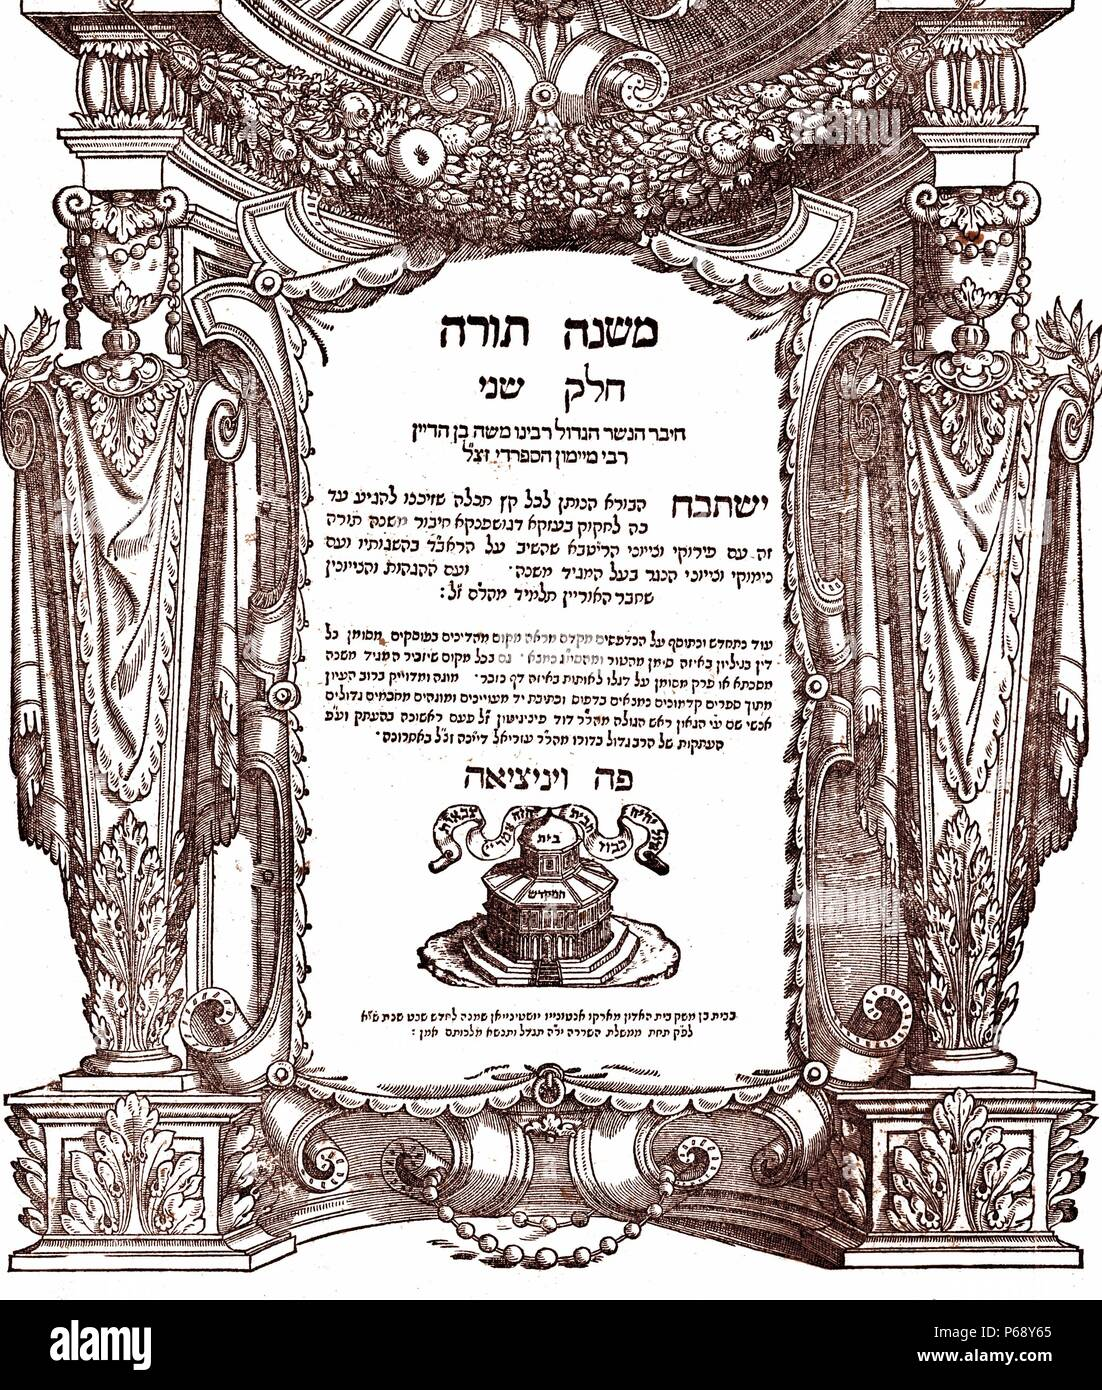 A 16th Century Mishneh by Mosheh Ben Maimon, preeminent medieval Arabizedd Spanish, Sephardic Jewish philosopher, astronomer and one of the most prolific and influential Torah Scholars and physicians of the Middle Ages. Dated 16th Century - Stock Image